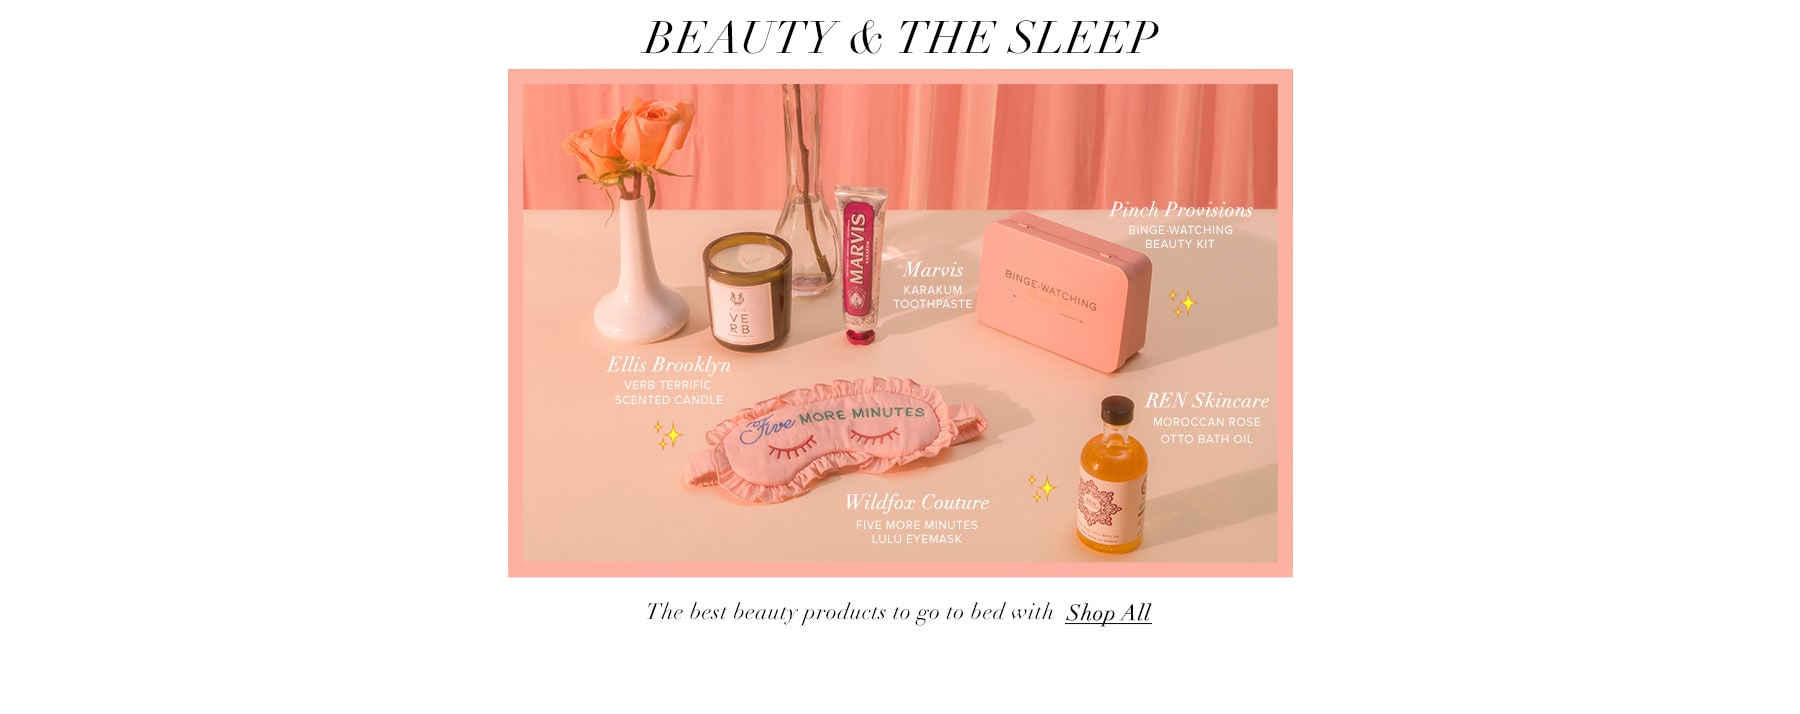 Beauty & the sleep. The best beauty products to go to bed with. Shop all.